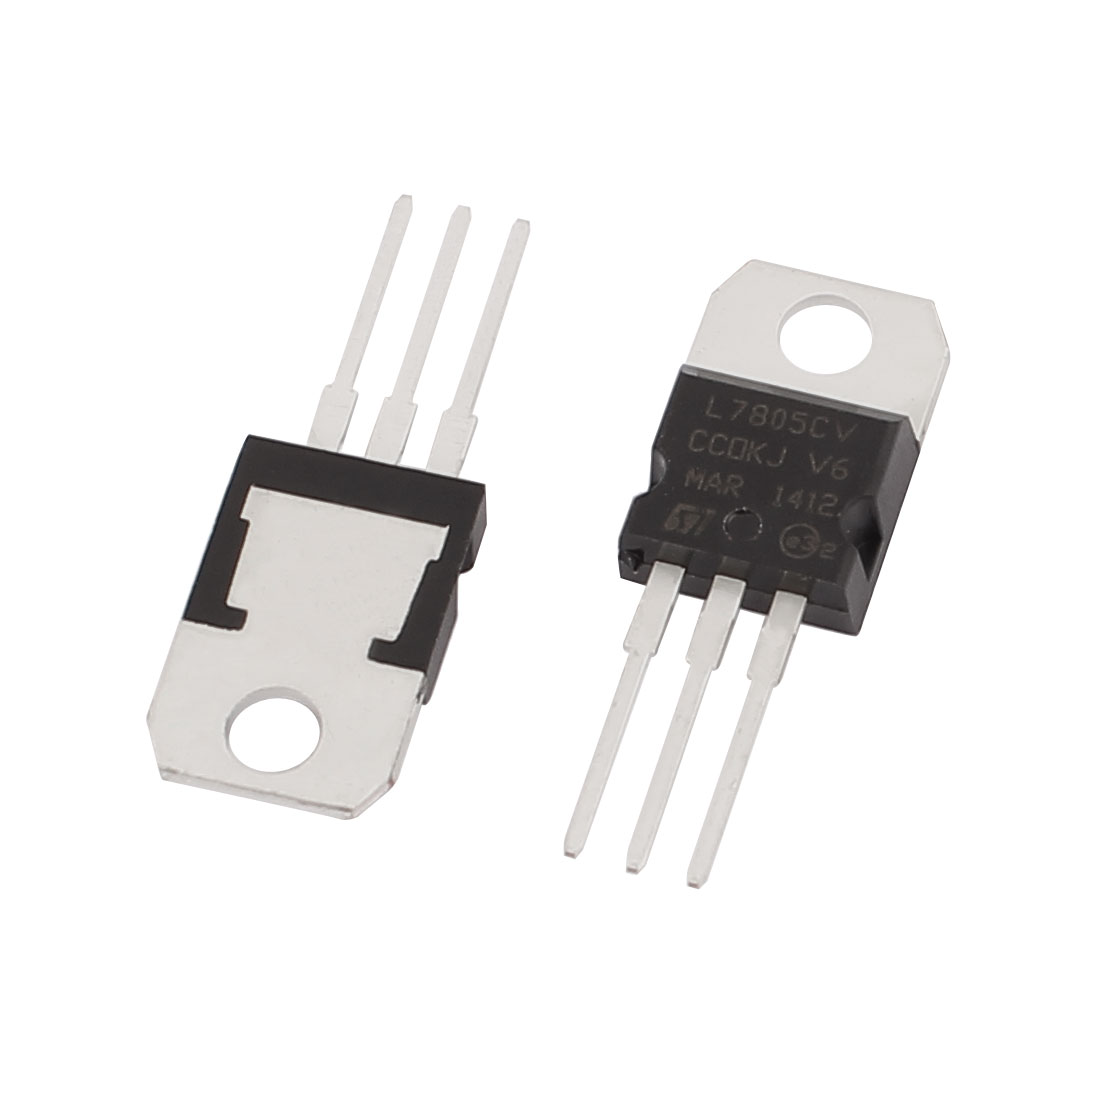 2 Pcs 5V 1.5A 3 Pin Terminals L7805CV Positive Voltage Regulator TO-220